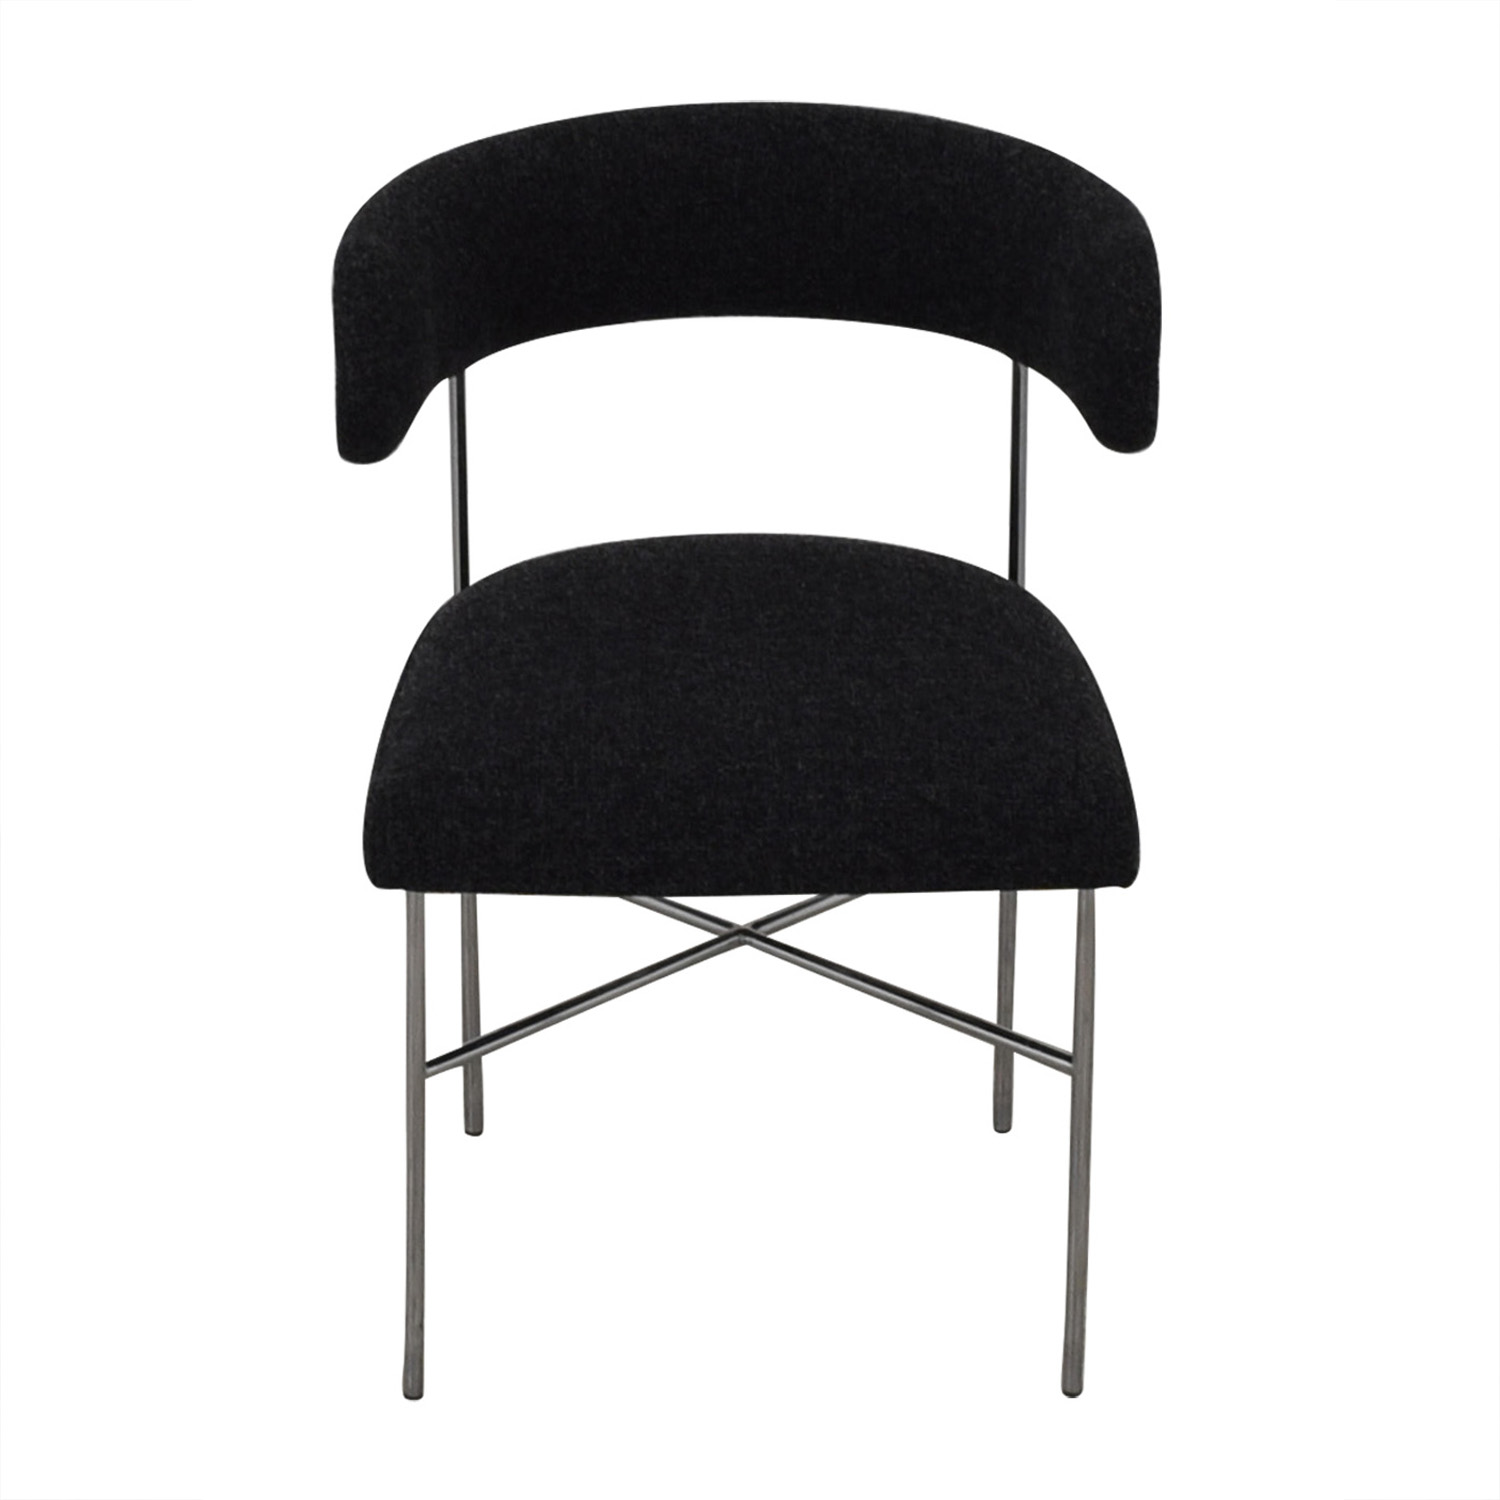 Interior Define Audrey Static Weave Dining Chair second hand